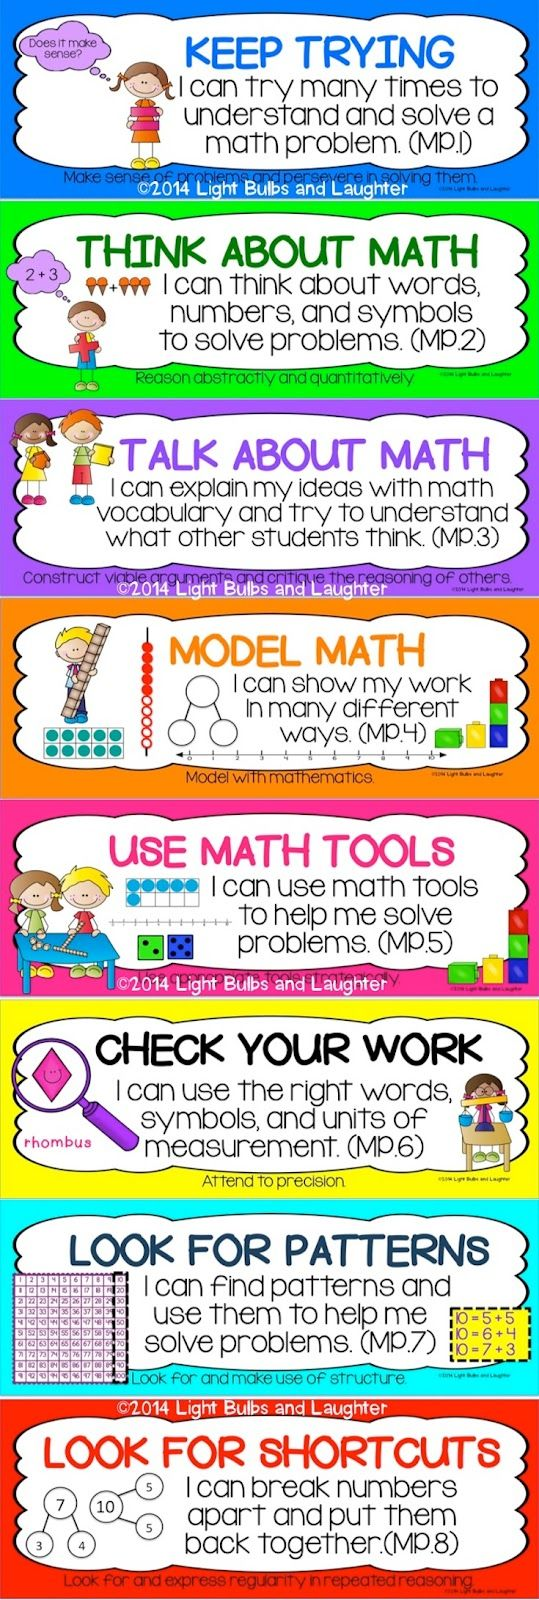 Why I Love Common Core Math - Eight Standards for Mathematical Practice, part 3